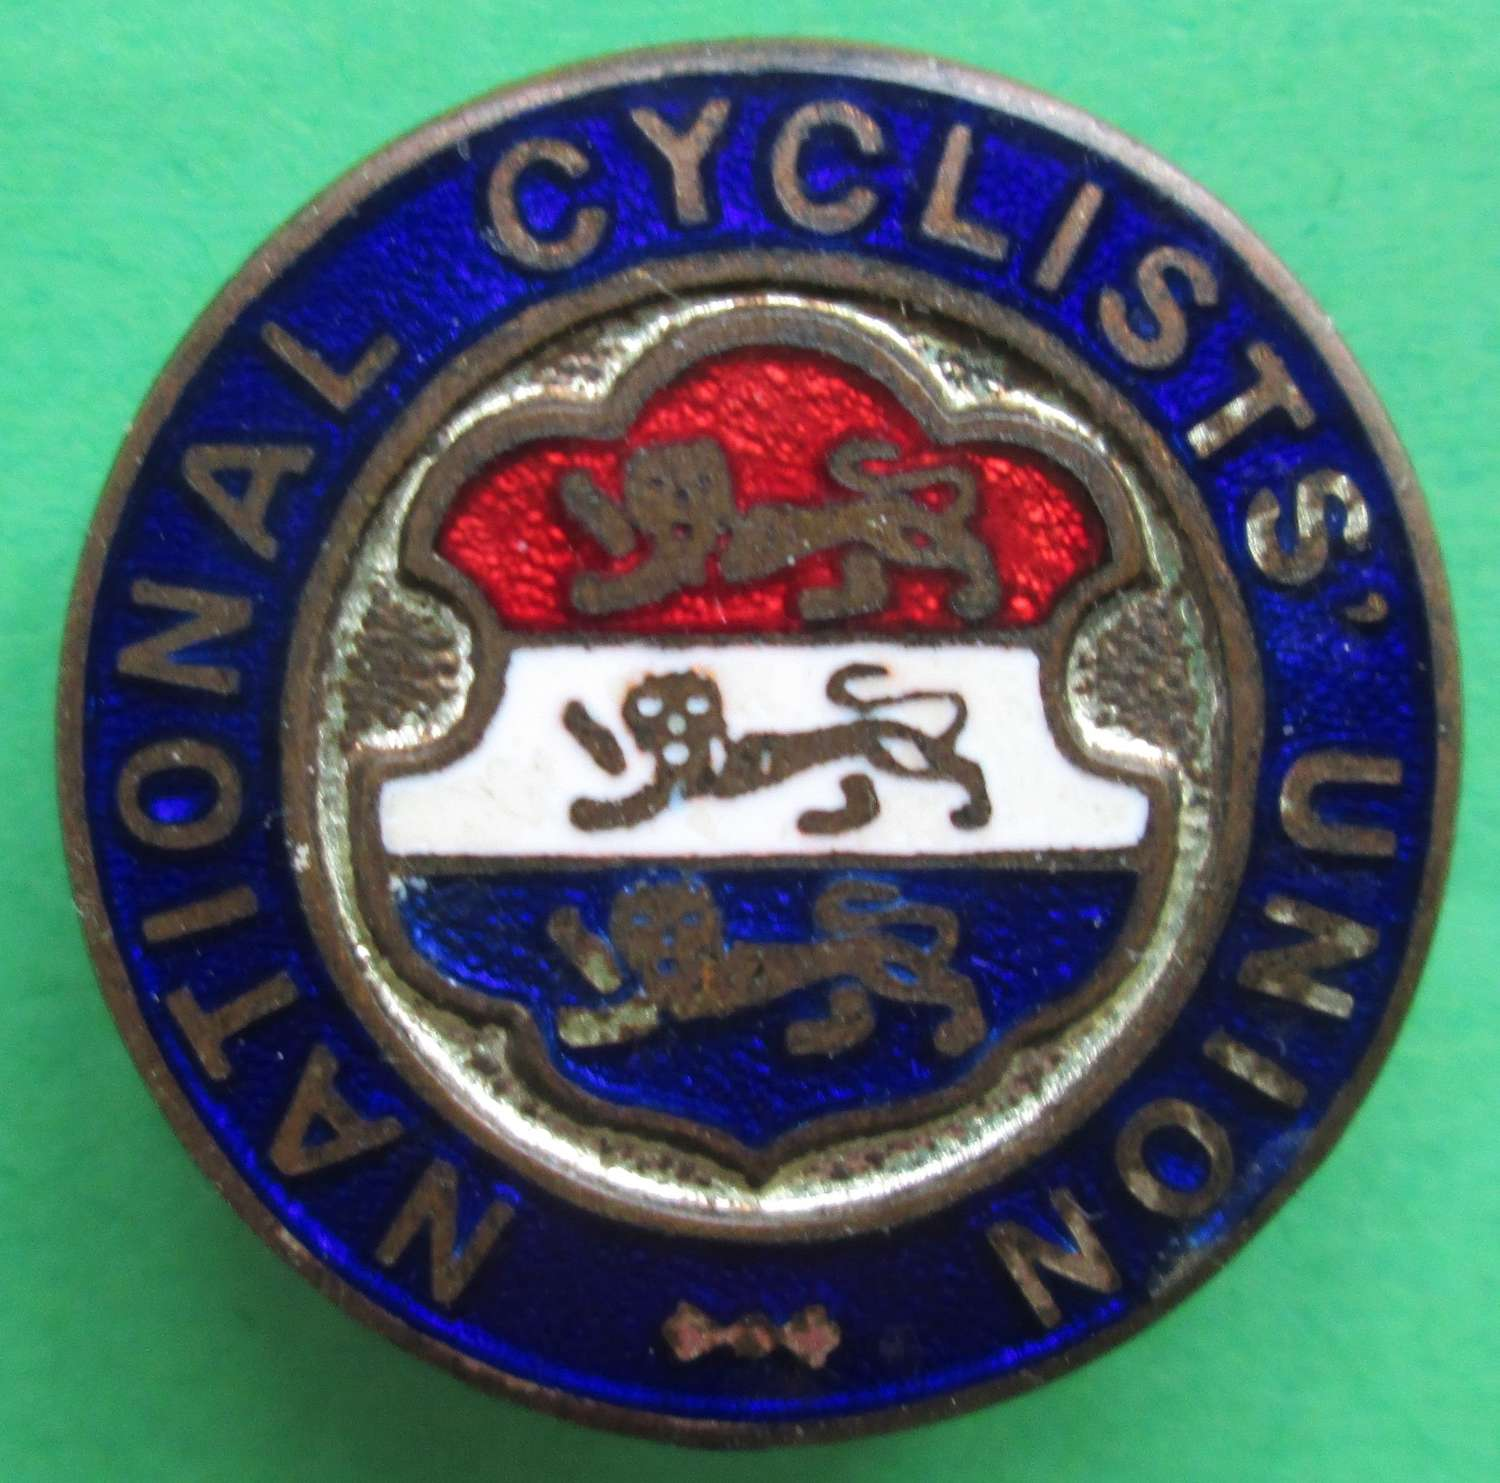 NATIONAL CYLCLIST UNION BADGE